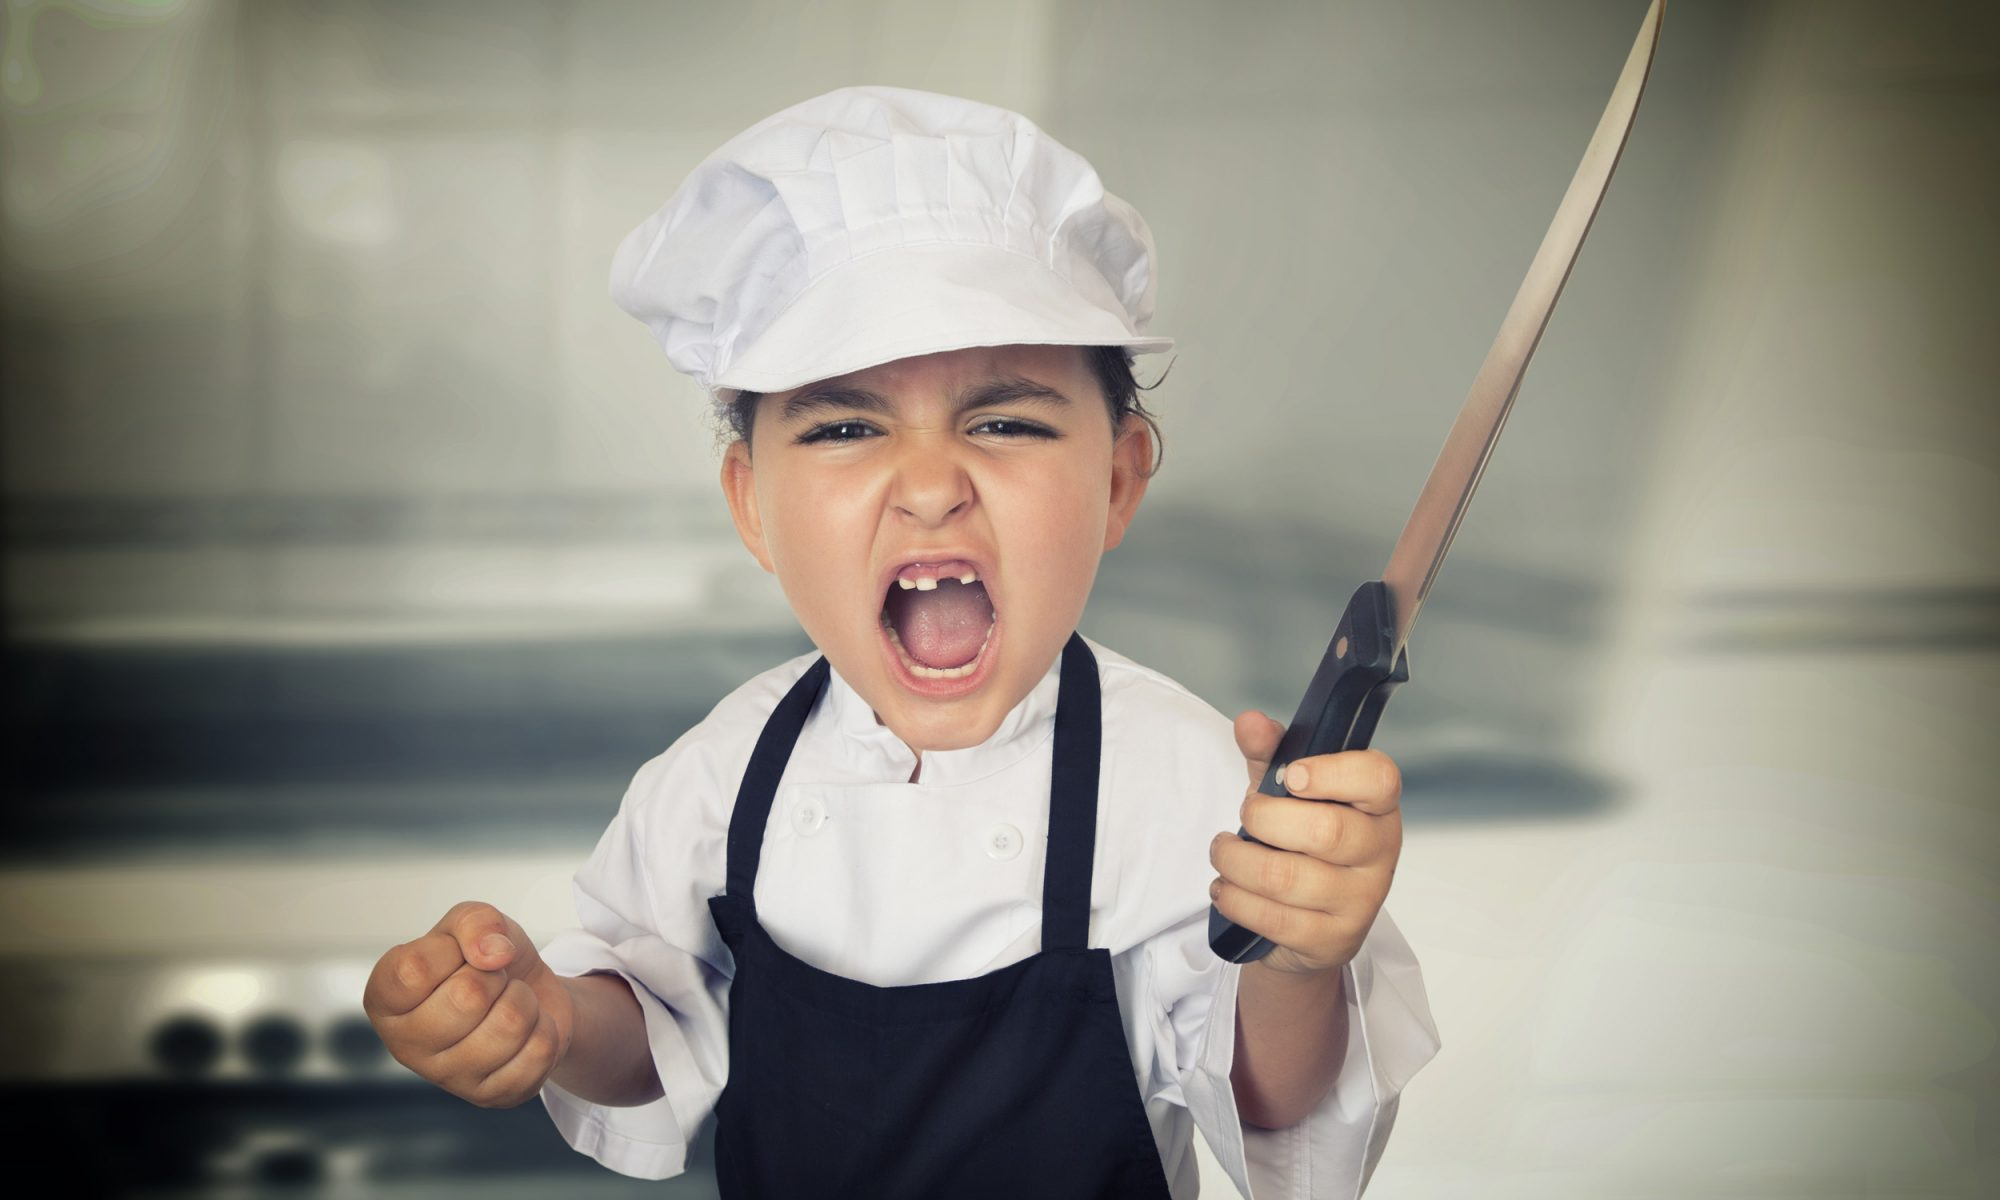 EC: 5 Reasons Why You Shouldn't Bring Your Kid to Brunch